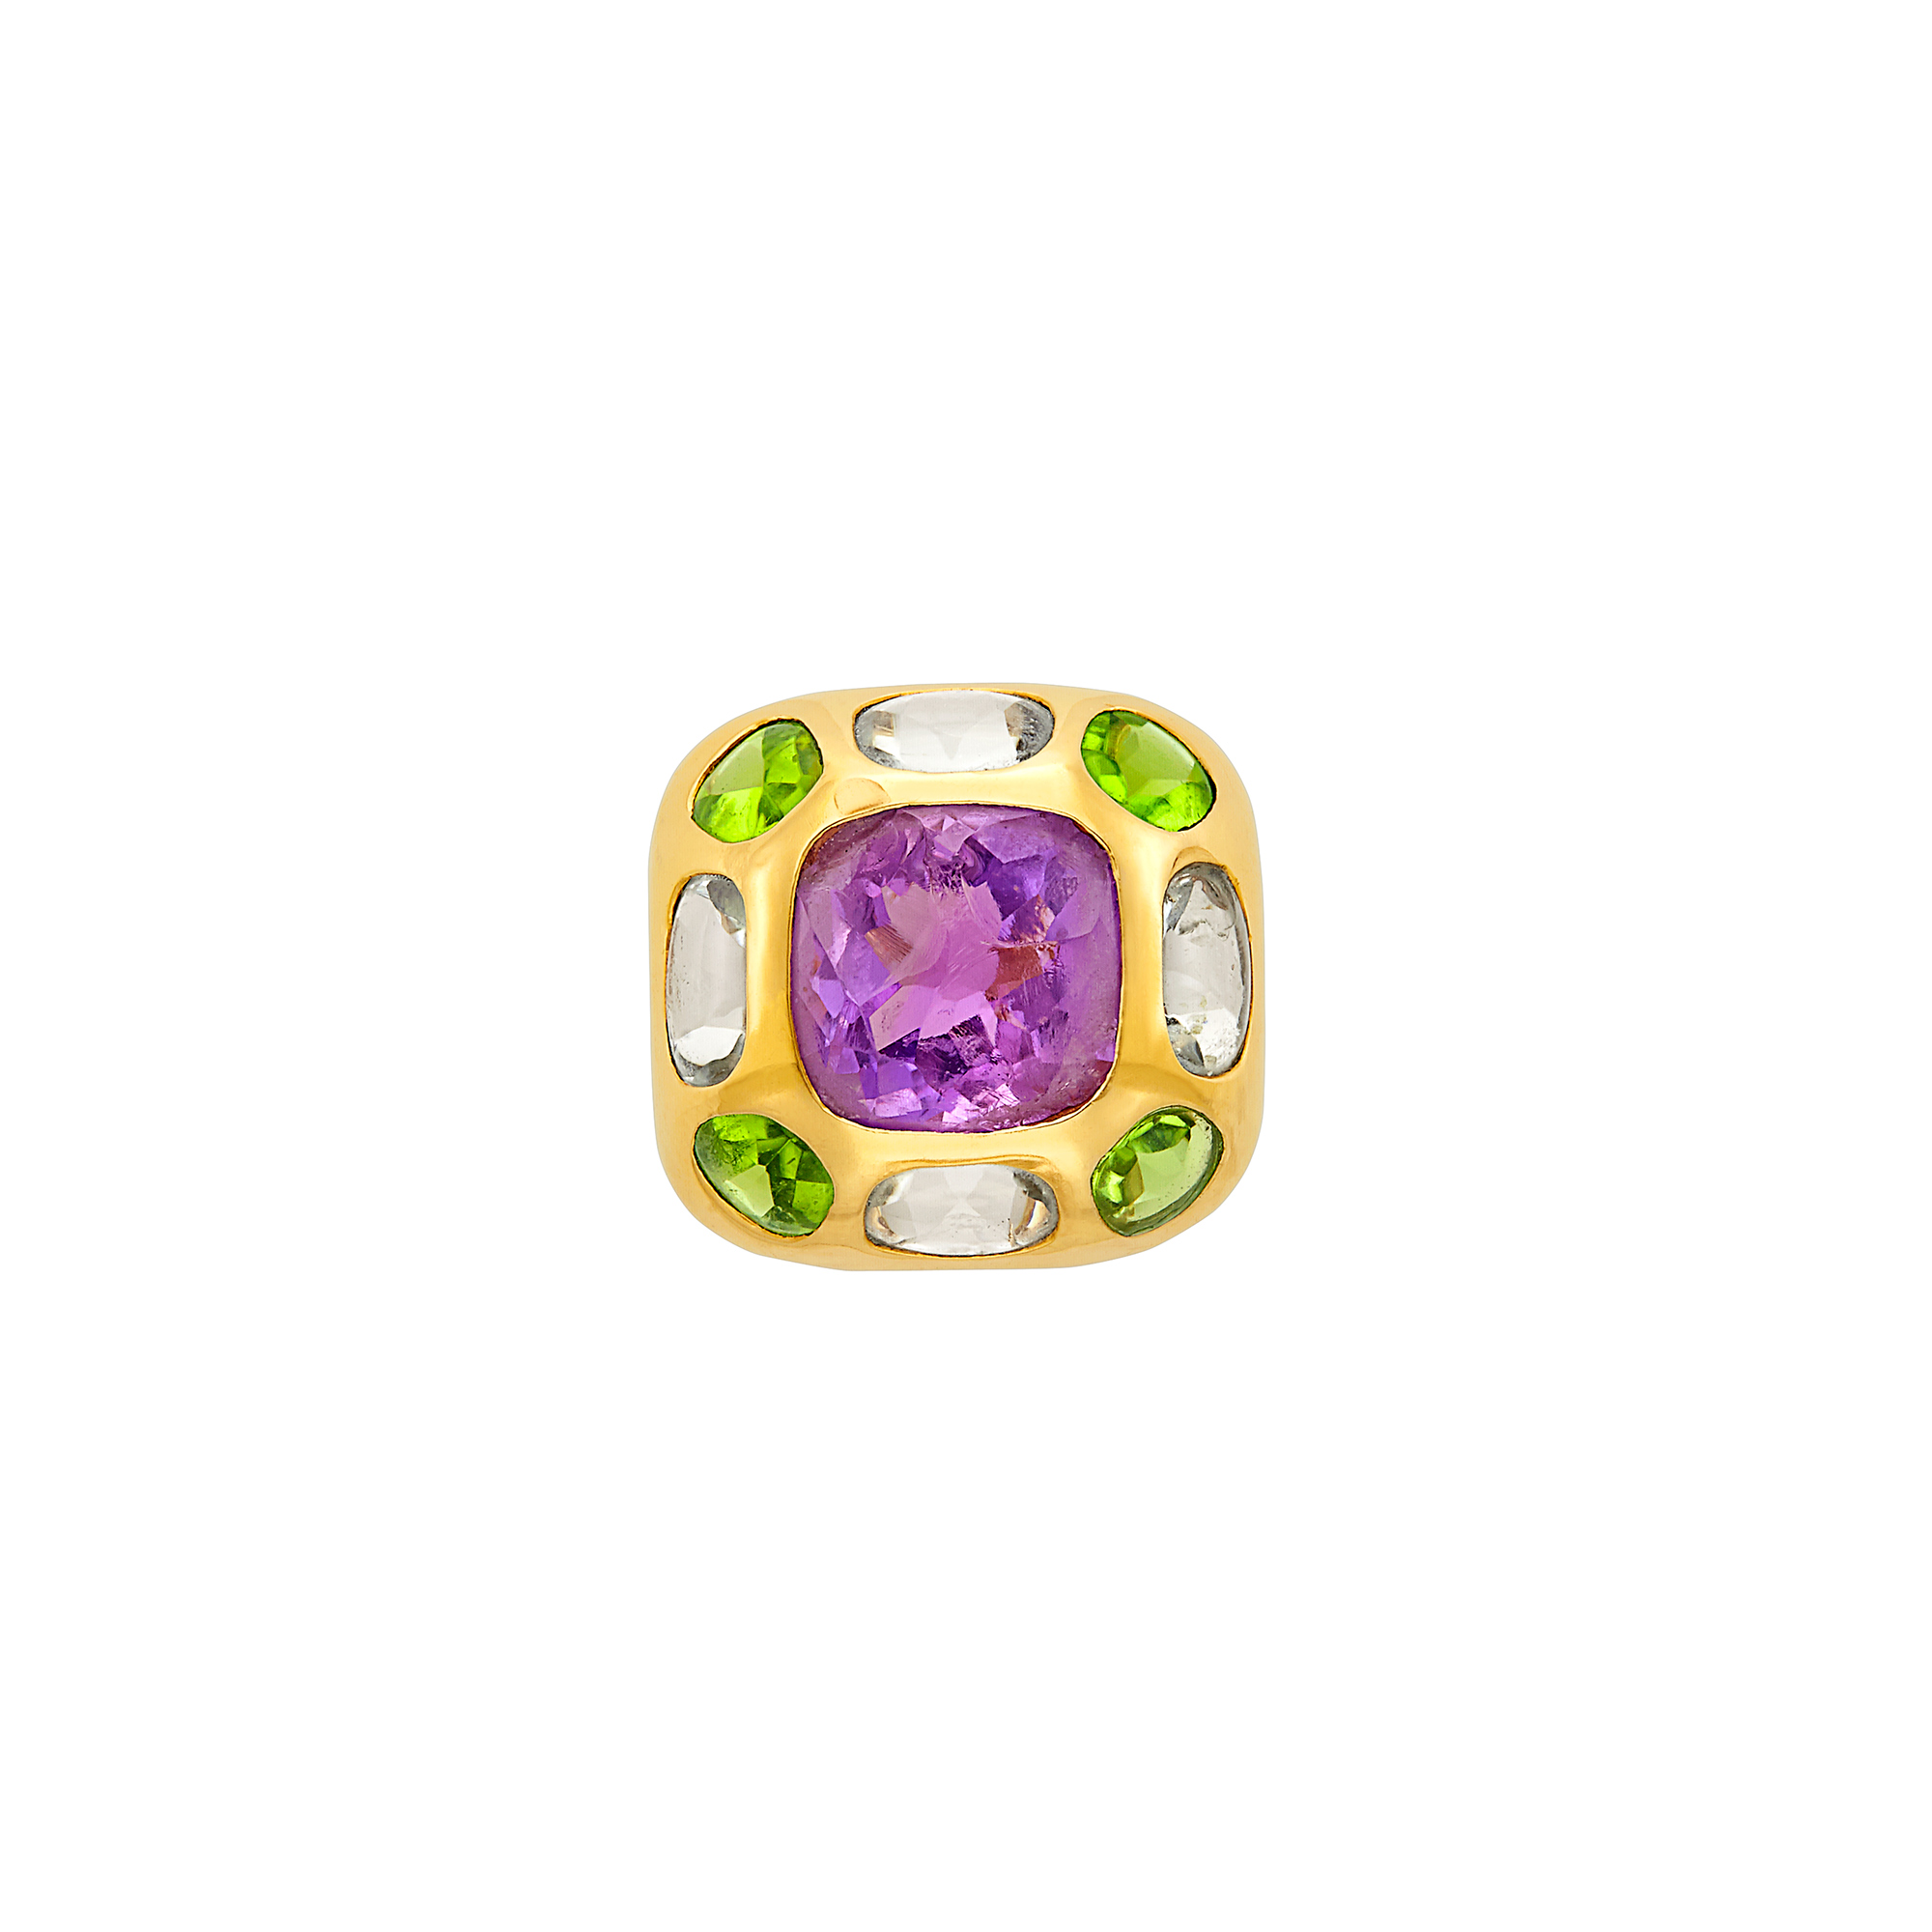 Lot image - Gold, Amethyst, Peridot and Aquamarine Baroque Ring, Chanel, France